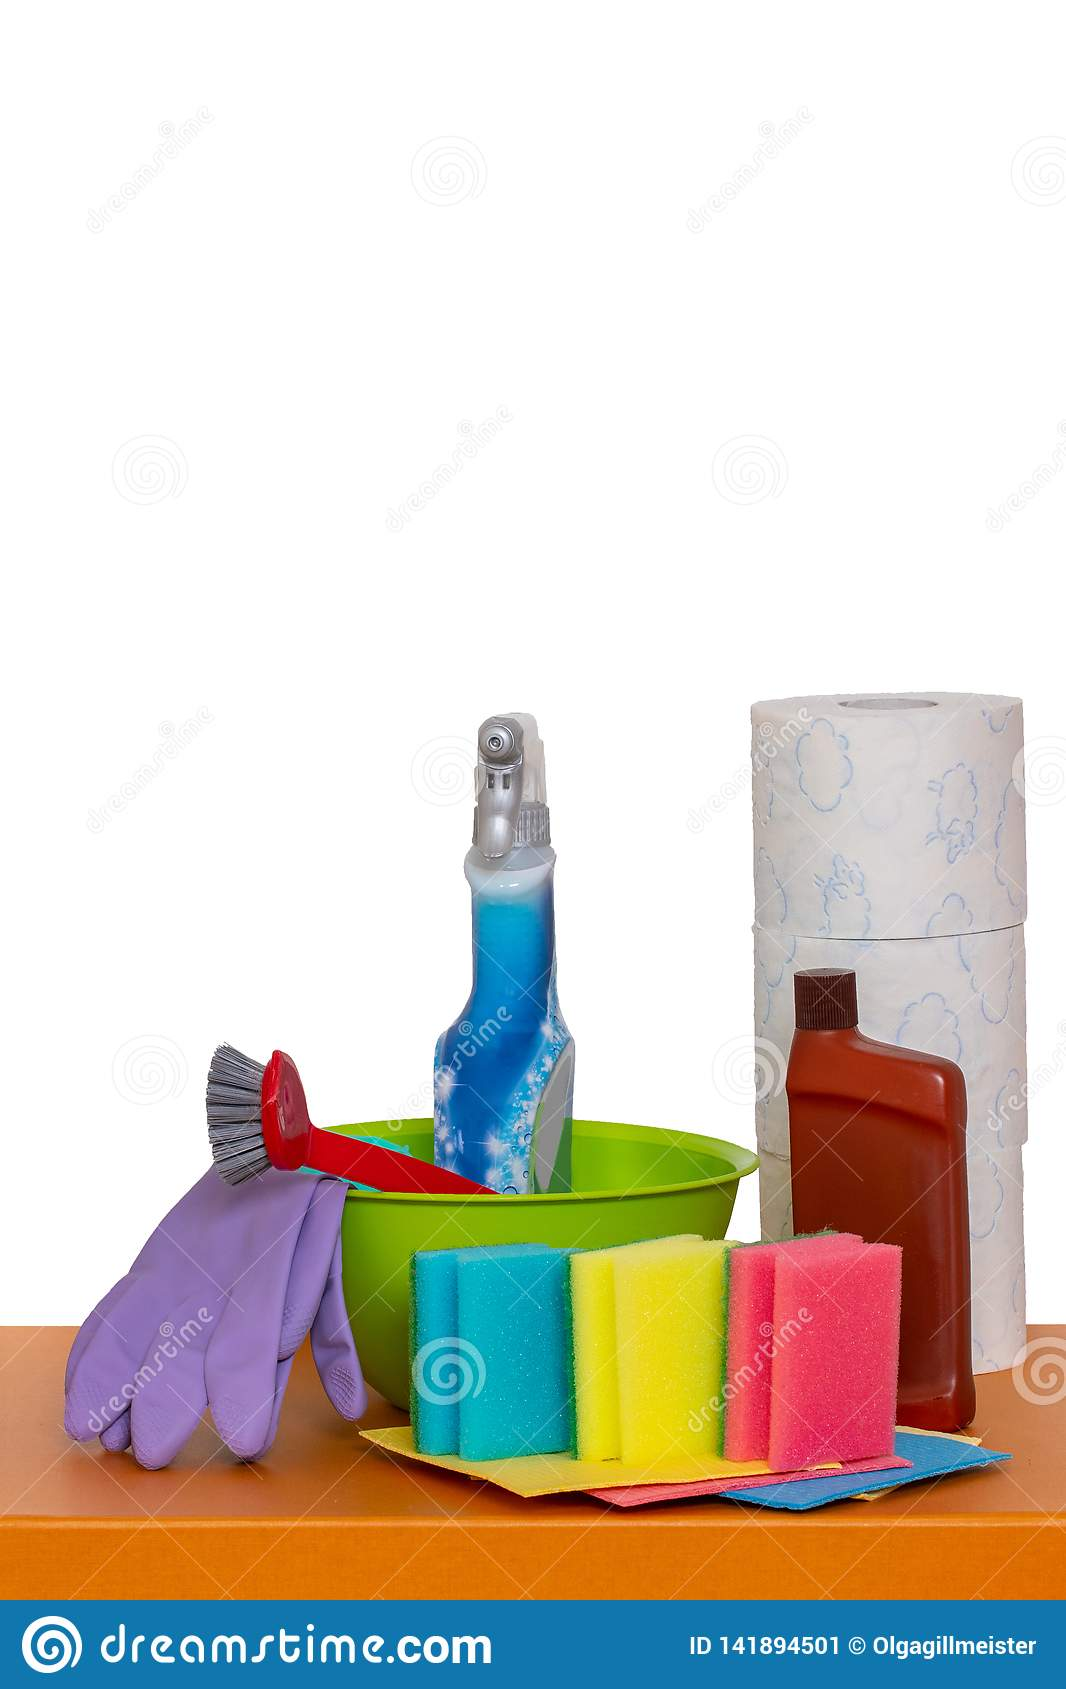 Spring cleaning background. Close-up of house cleaning products and cleaning supplies on orange wooden table isolated on a white